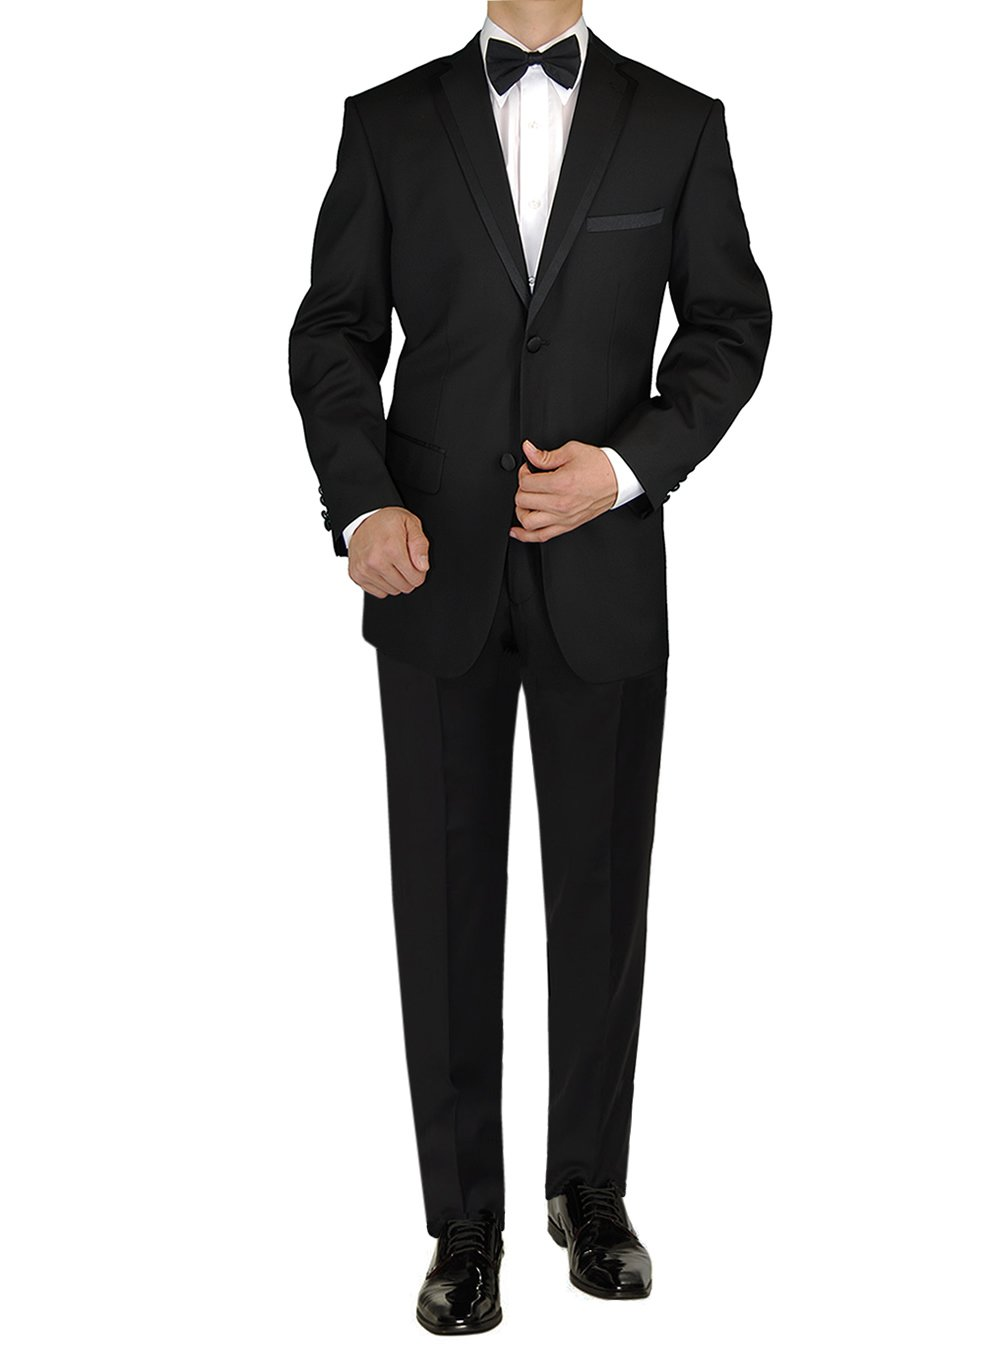 GN GIORGIO NAPOLI Mens Tuxedo Suit Two Button Jacket Flat Front Adjustable Pants (46 Long US / 56L EU/W 40'', Black) by GN GIORGIO NAPOLI